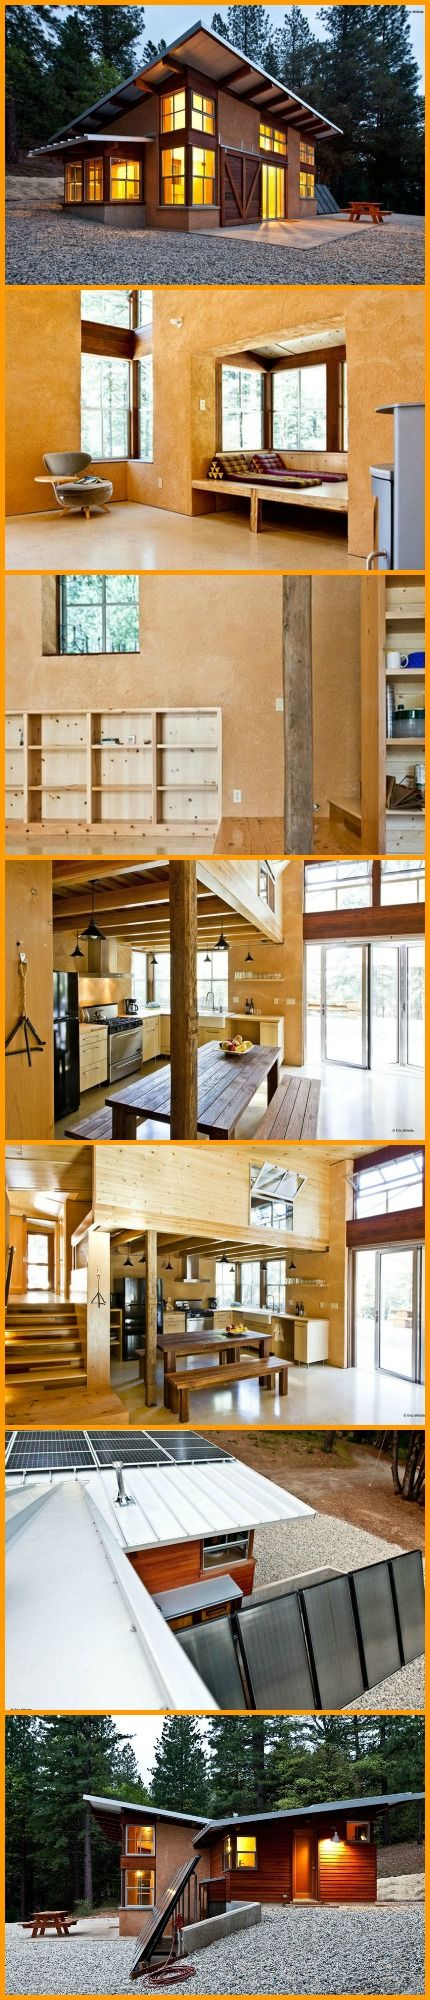 This home is a great example of sustainability and off grid living! View the complete album at http://theownerbuildernetwork.co/3cwa